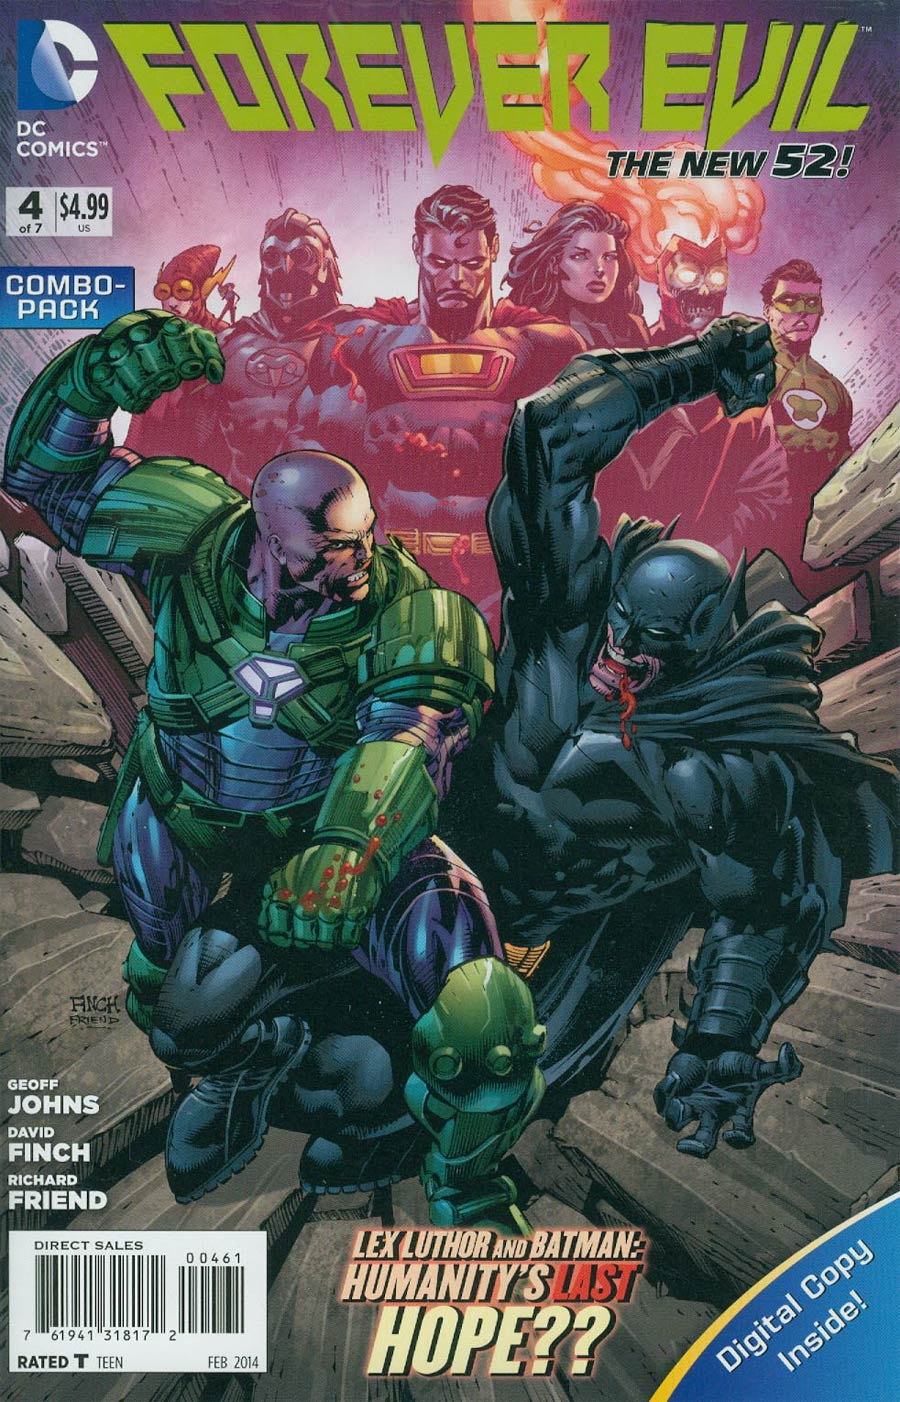 Forever Evil #4 Cover C Combo Pack Without Polybag